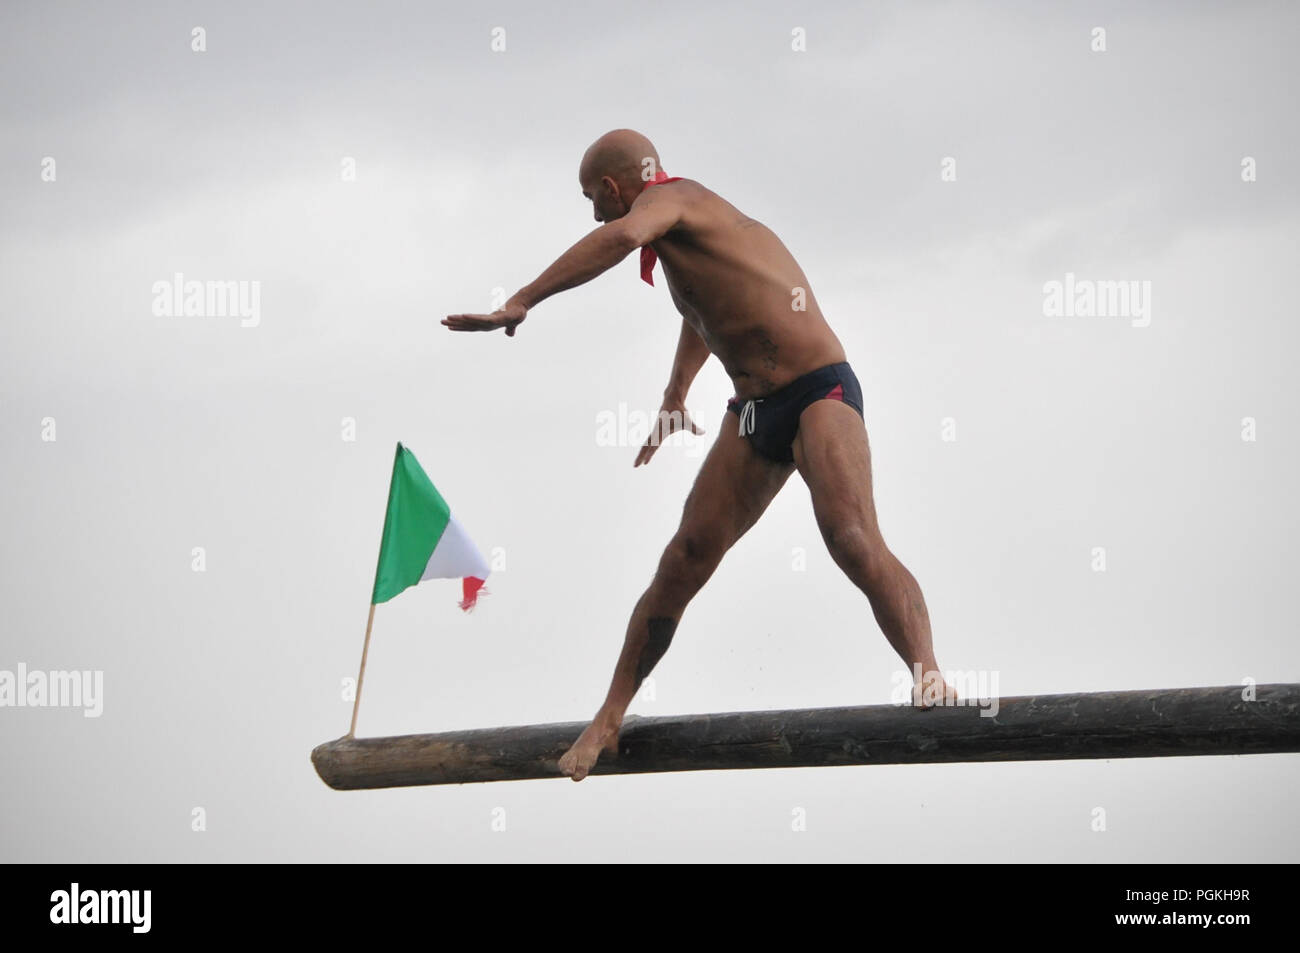 Pozzuoli, Italy. 26th Aug, 2018. The Pennone a Mare is a traditional competition that takes place between the fishermen of Pozzuoli on the Molo Caligoliano. The event is that the fishermen in the race must catch three flags fixed in the ends of a pole covered with soap and facing the sea. The race was postponed on August 15 in a sign of proximity to the city of Genoa after the collapse of the Morandi Bridge takes place today August 26th 2018. Credit: Paola Visone/Pacific Press/Alamy Live News - Stock Image